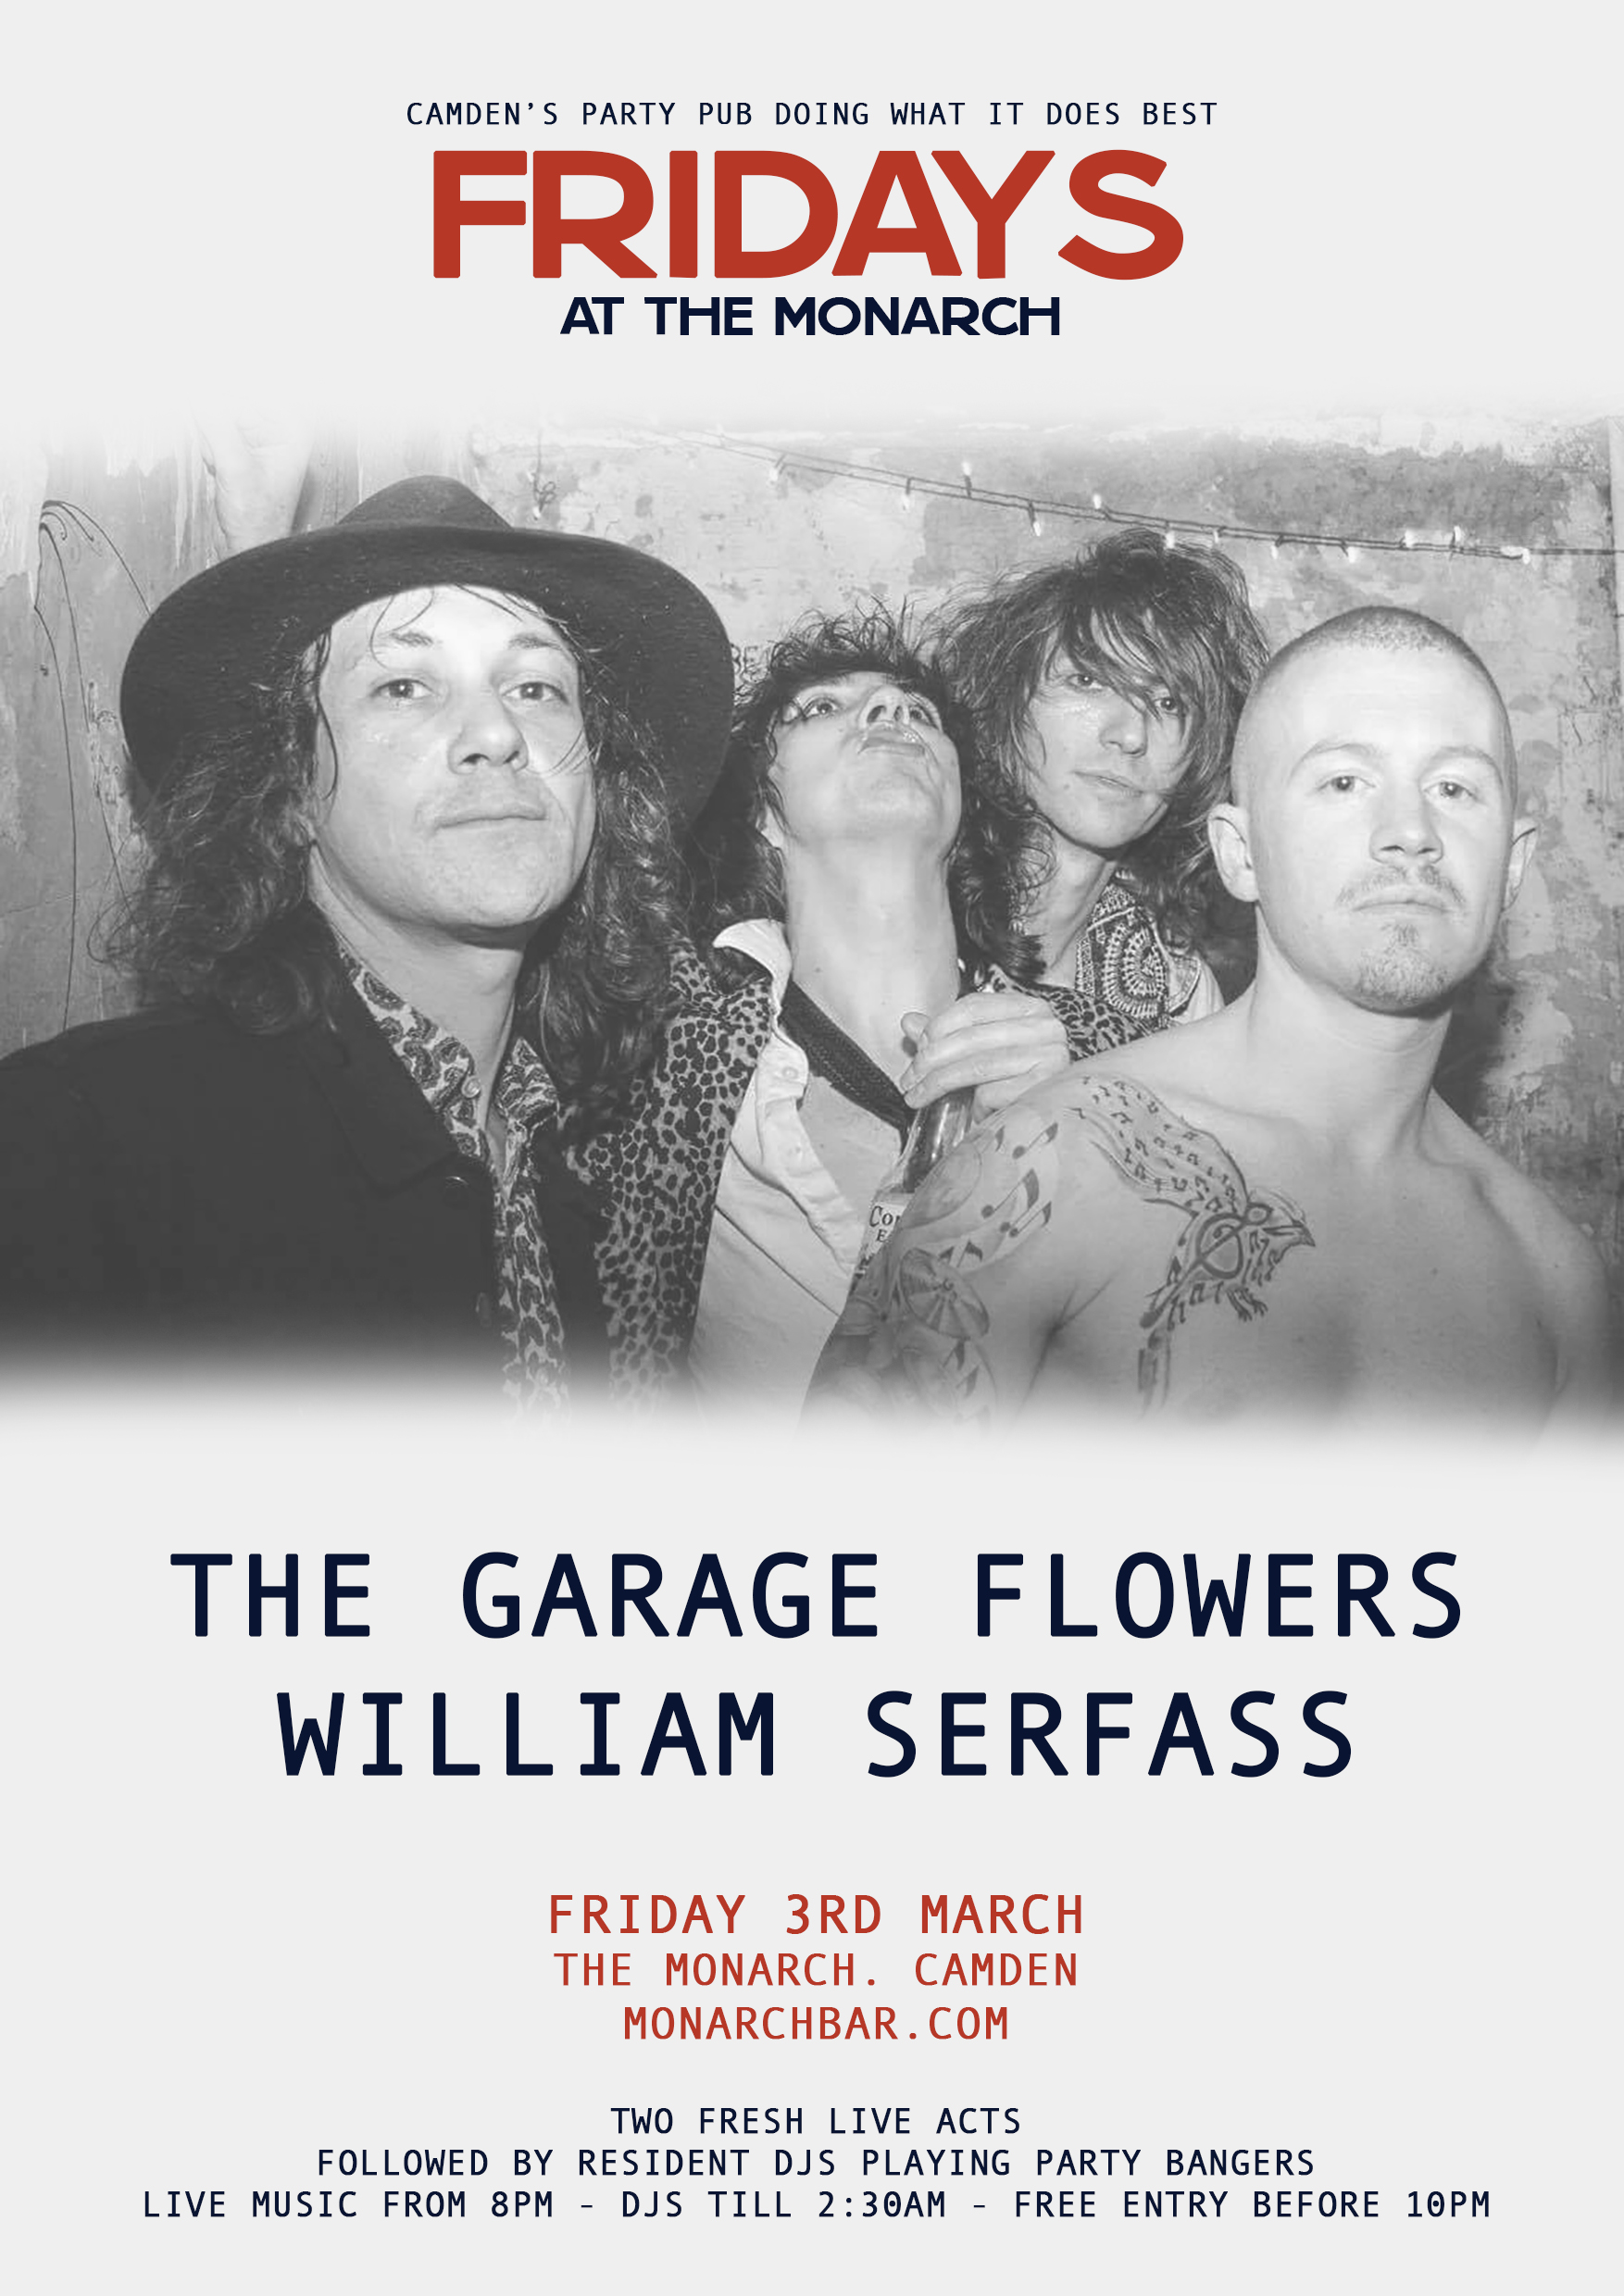 THE GARAGE FLOWERS